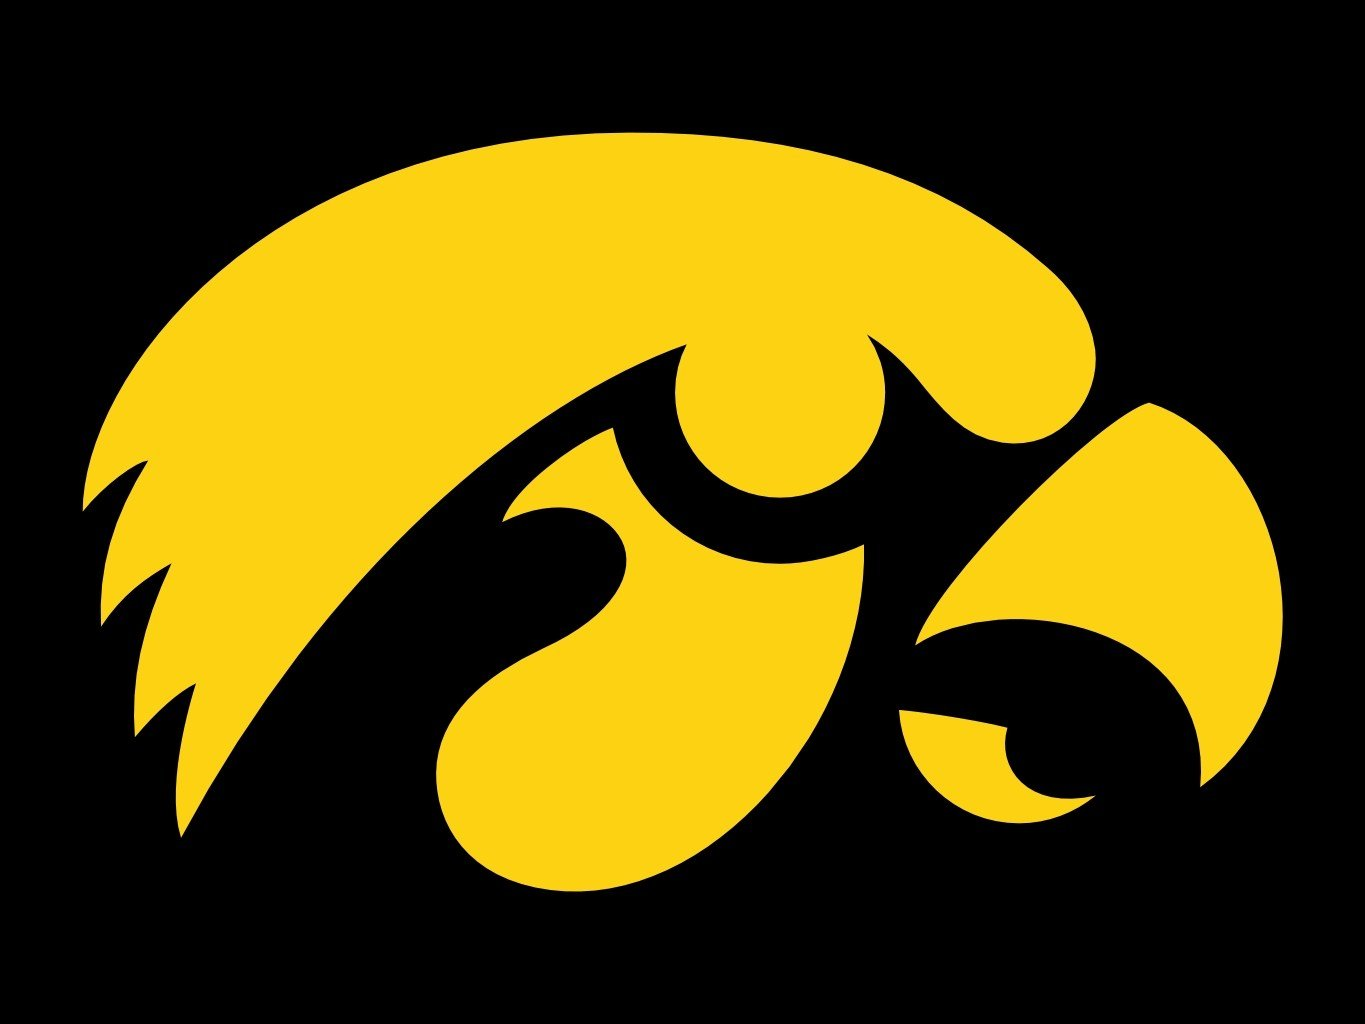 IL  loses by 7 Iowa in Overtime - Recap, Box score